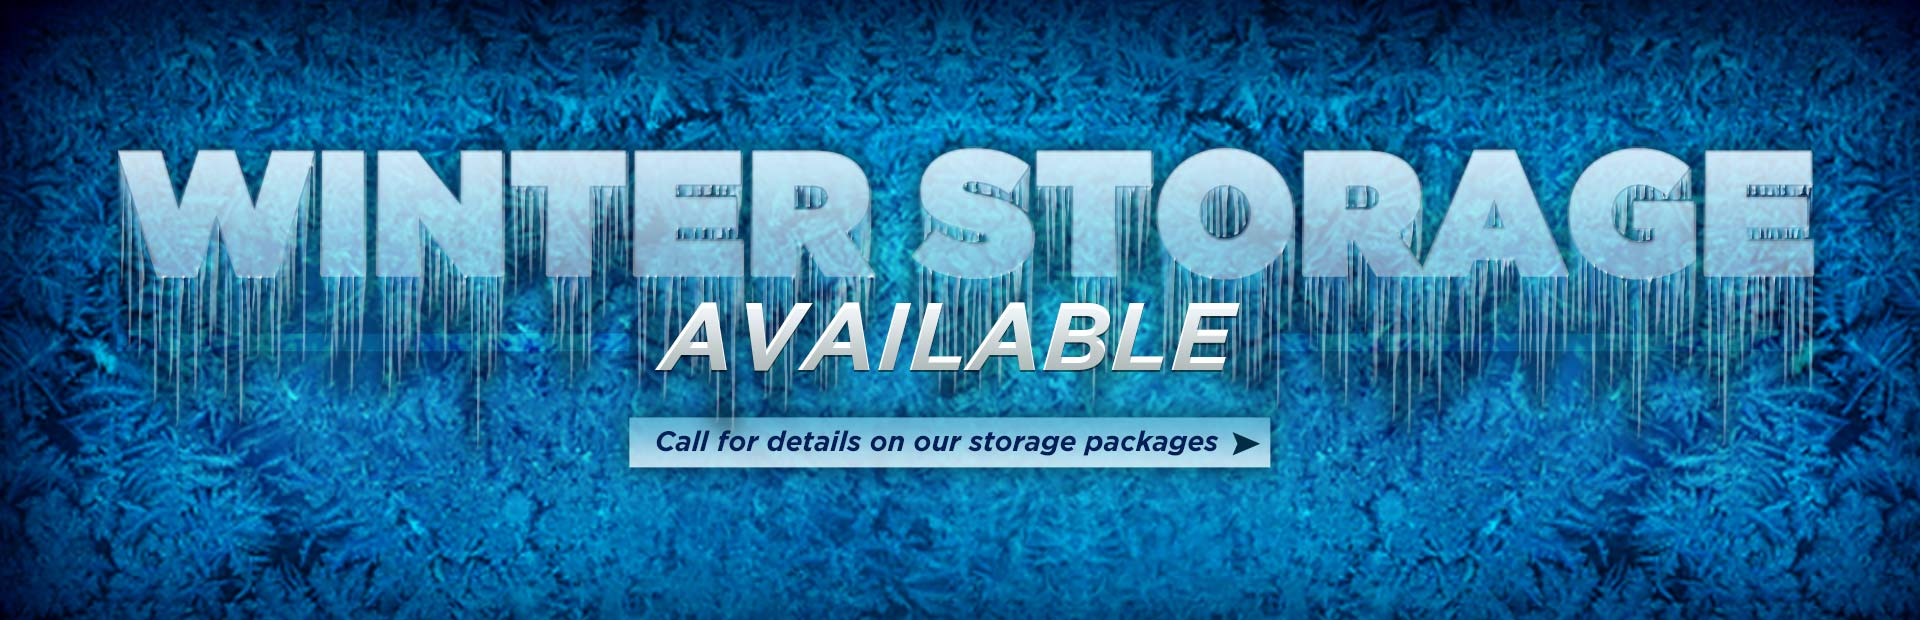 We have winter storage available! Call for details on our storage packages.